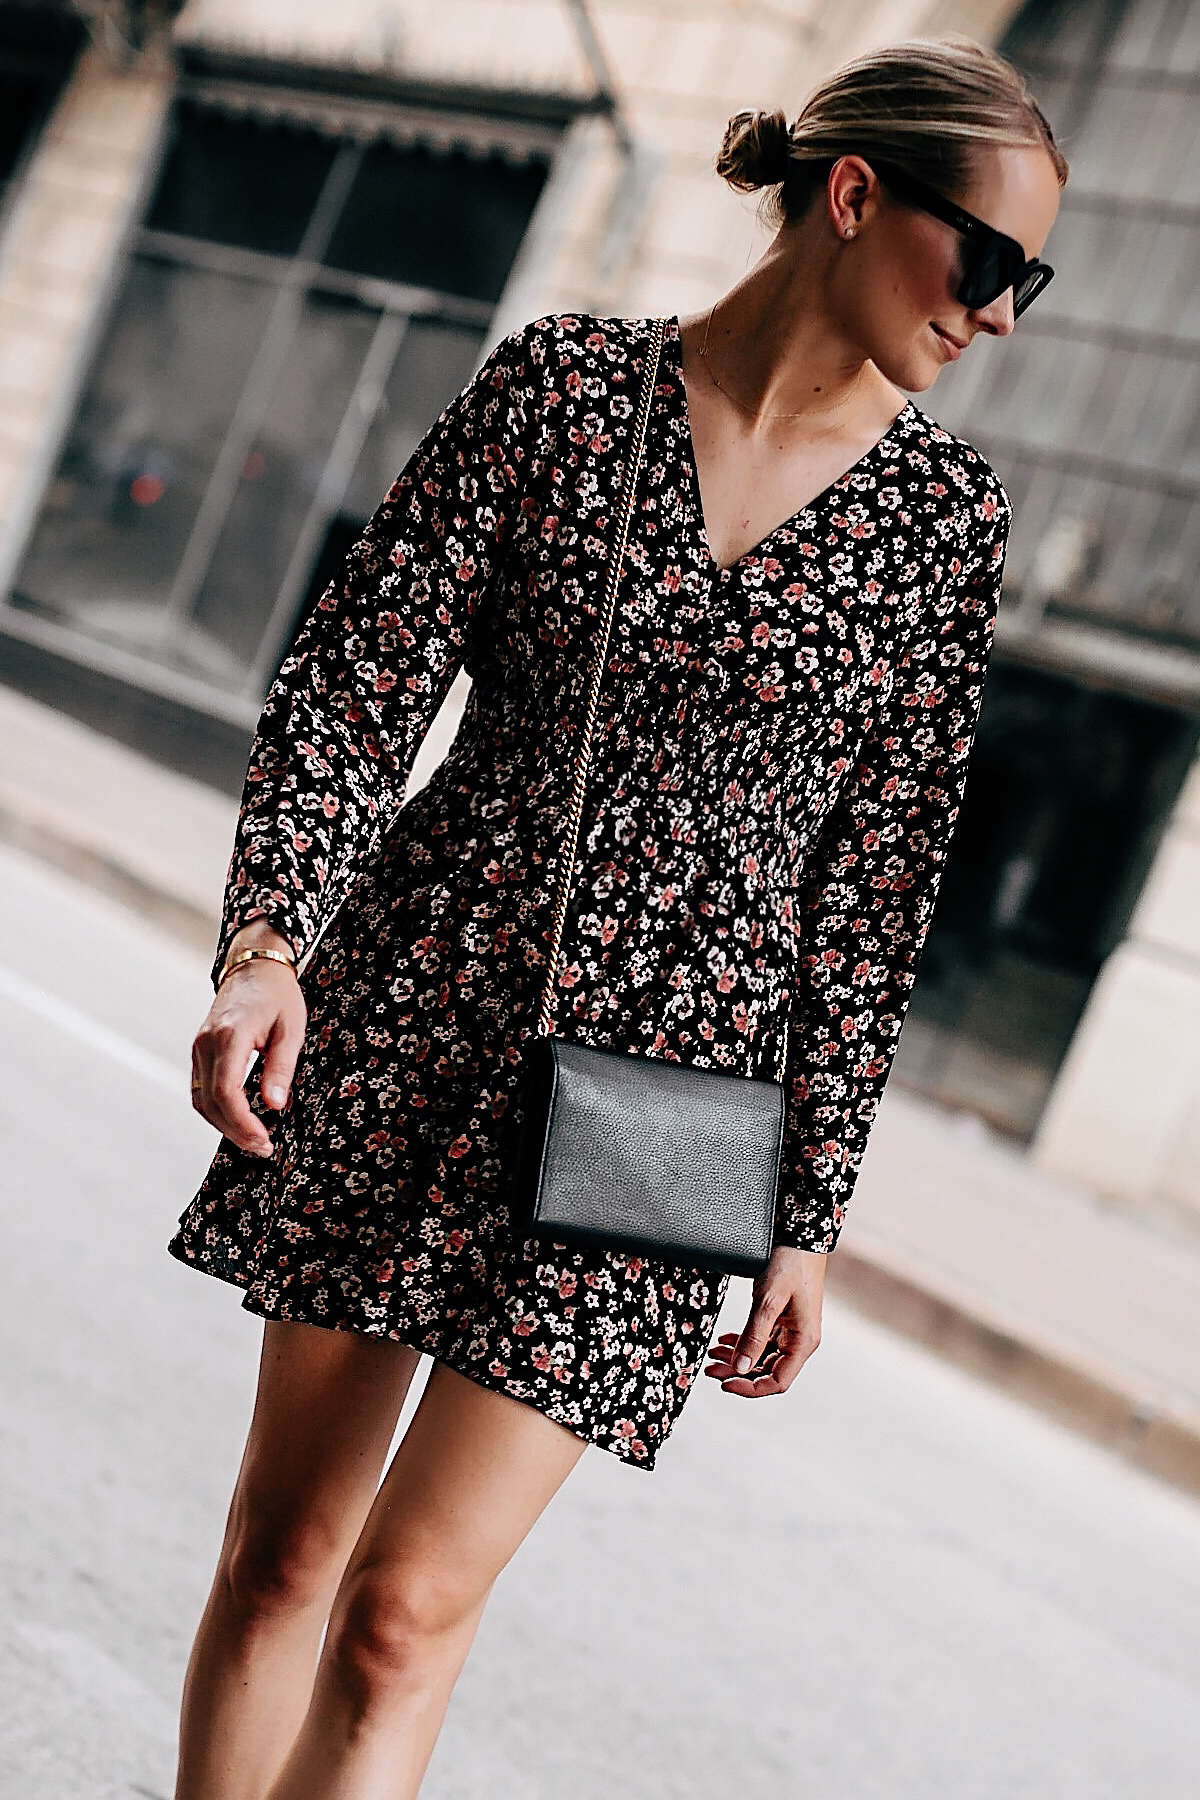 Blonde Woman Wearing Black Floral Long Sleeve Mini Dress Gold Chain Black Crossbody Handbag Black Sunglasses Fashion Jackson San Diego Fashion Blogger Street Style